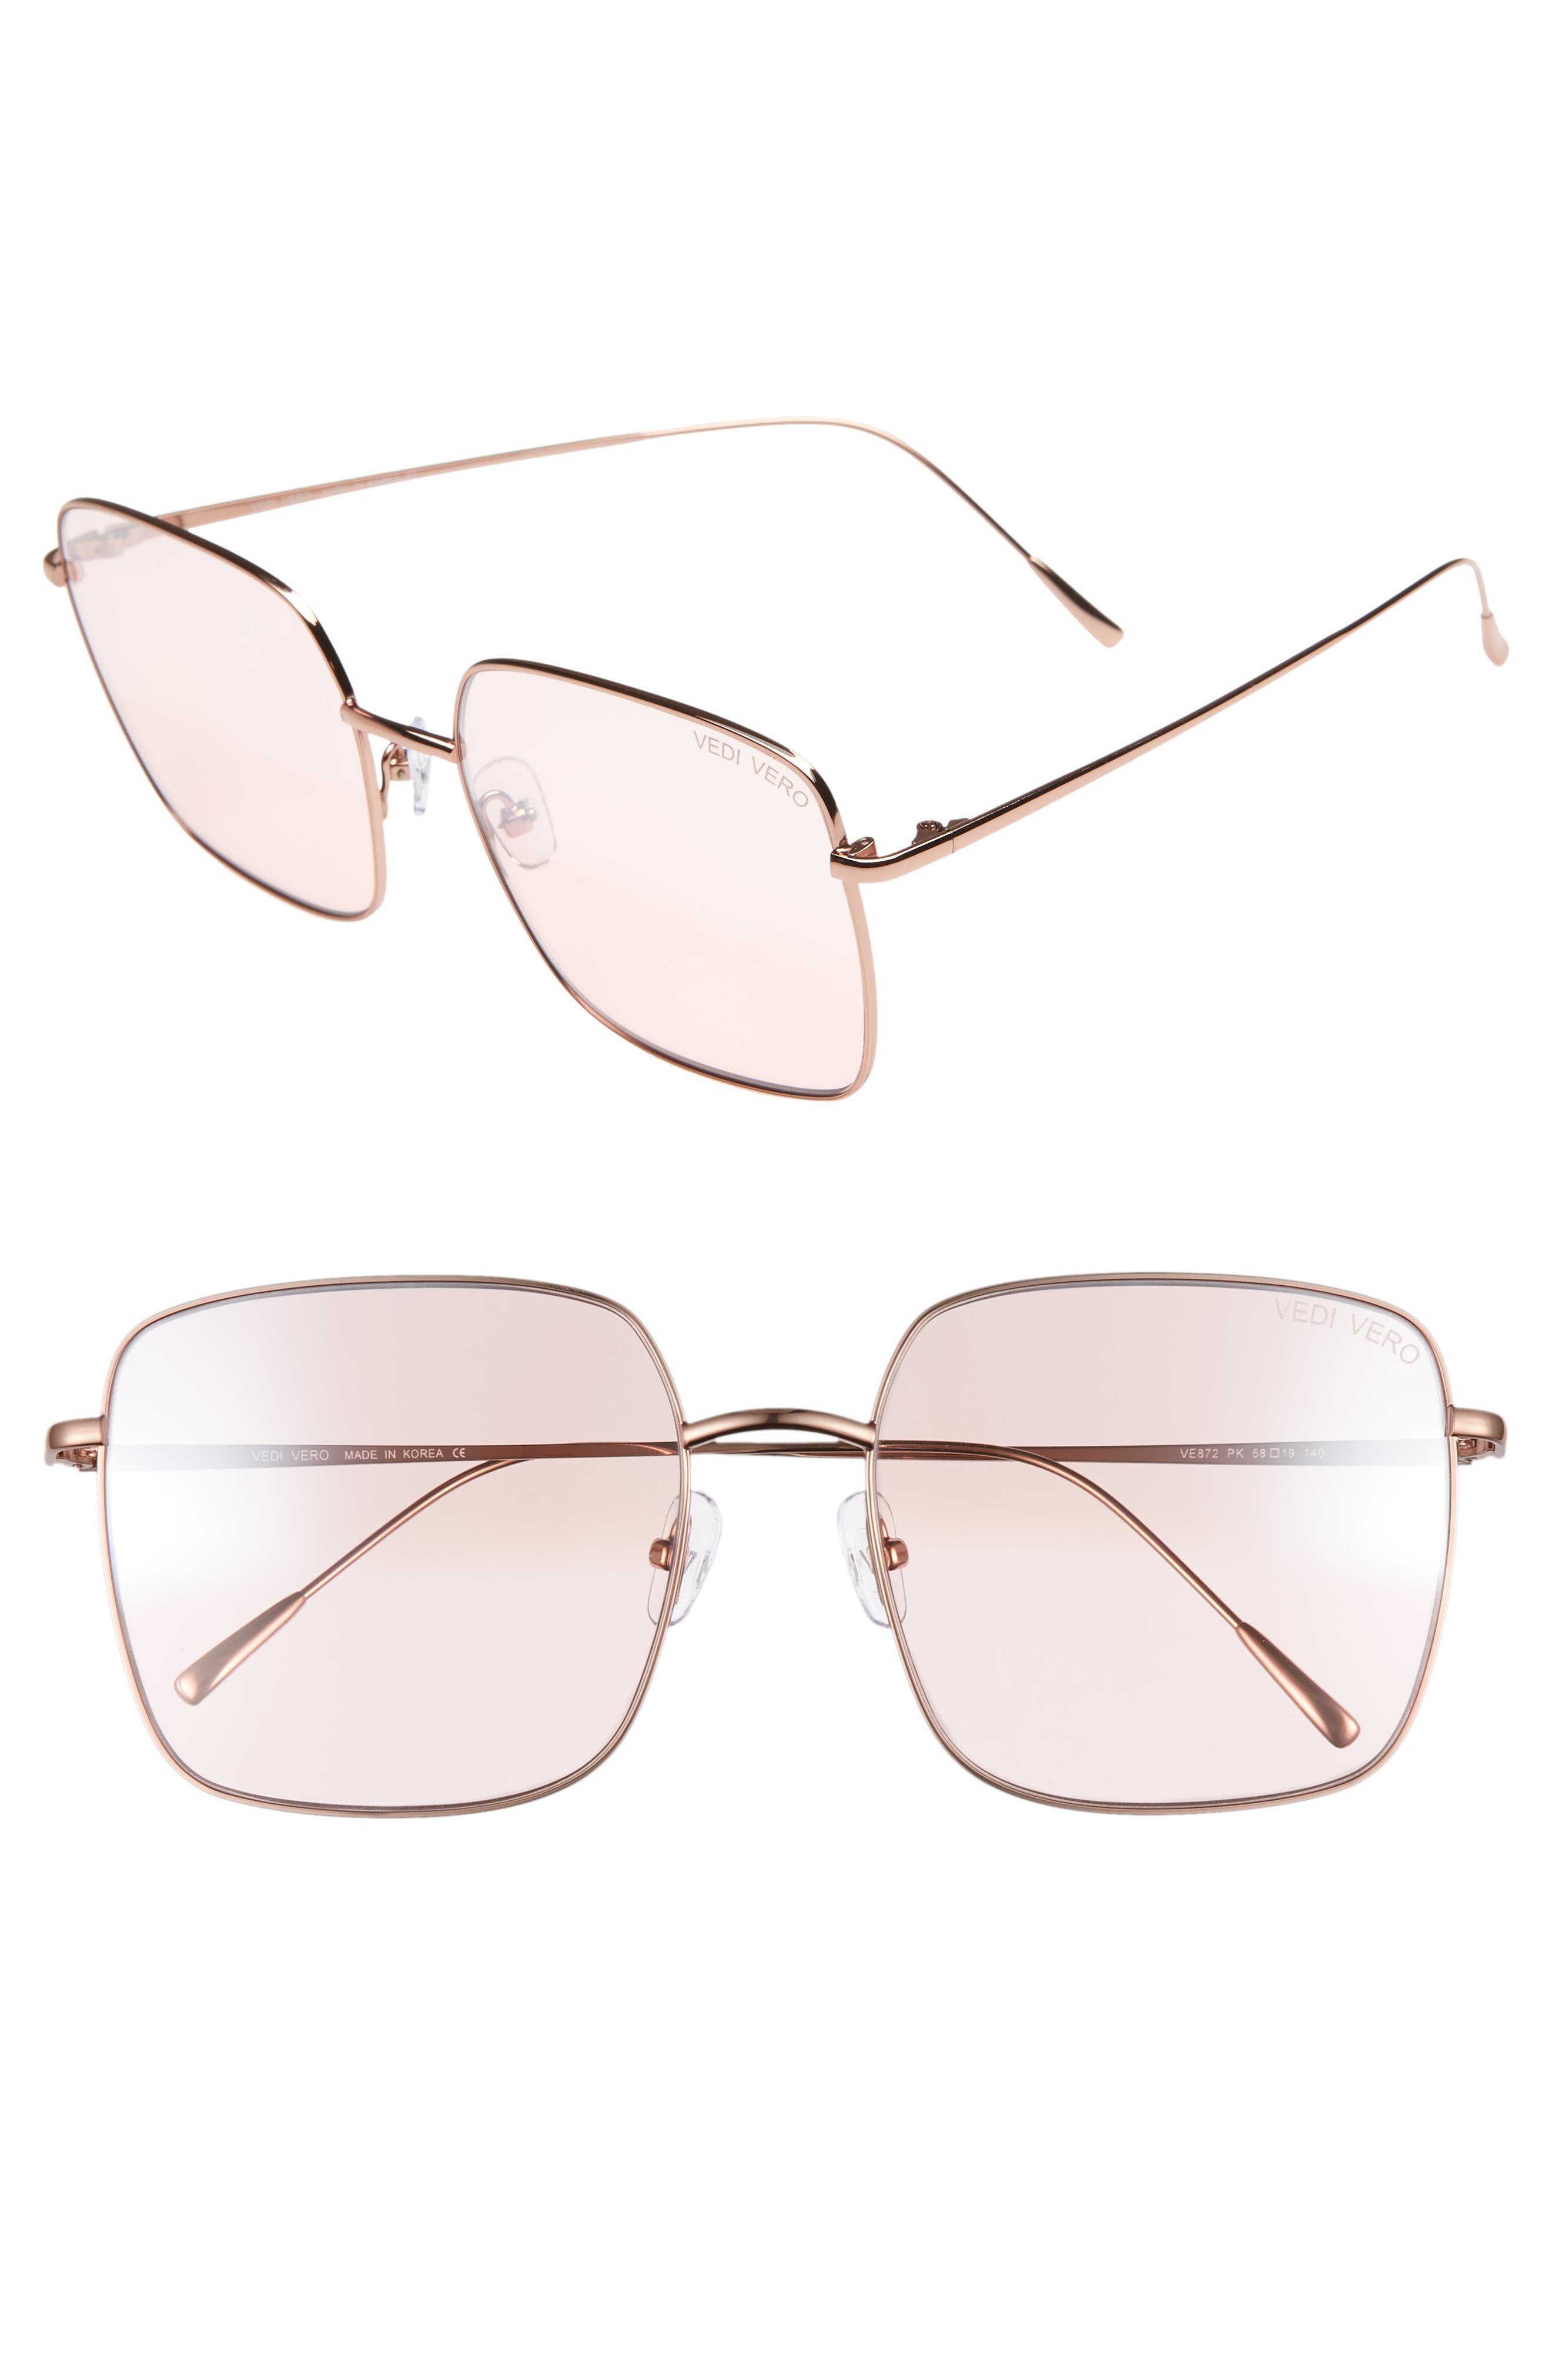 VEDI VERO 58Mm Square Sunglasses - Shiny Rose Gold